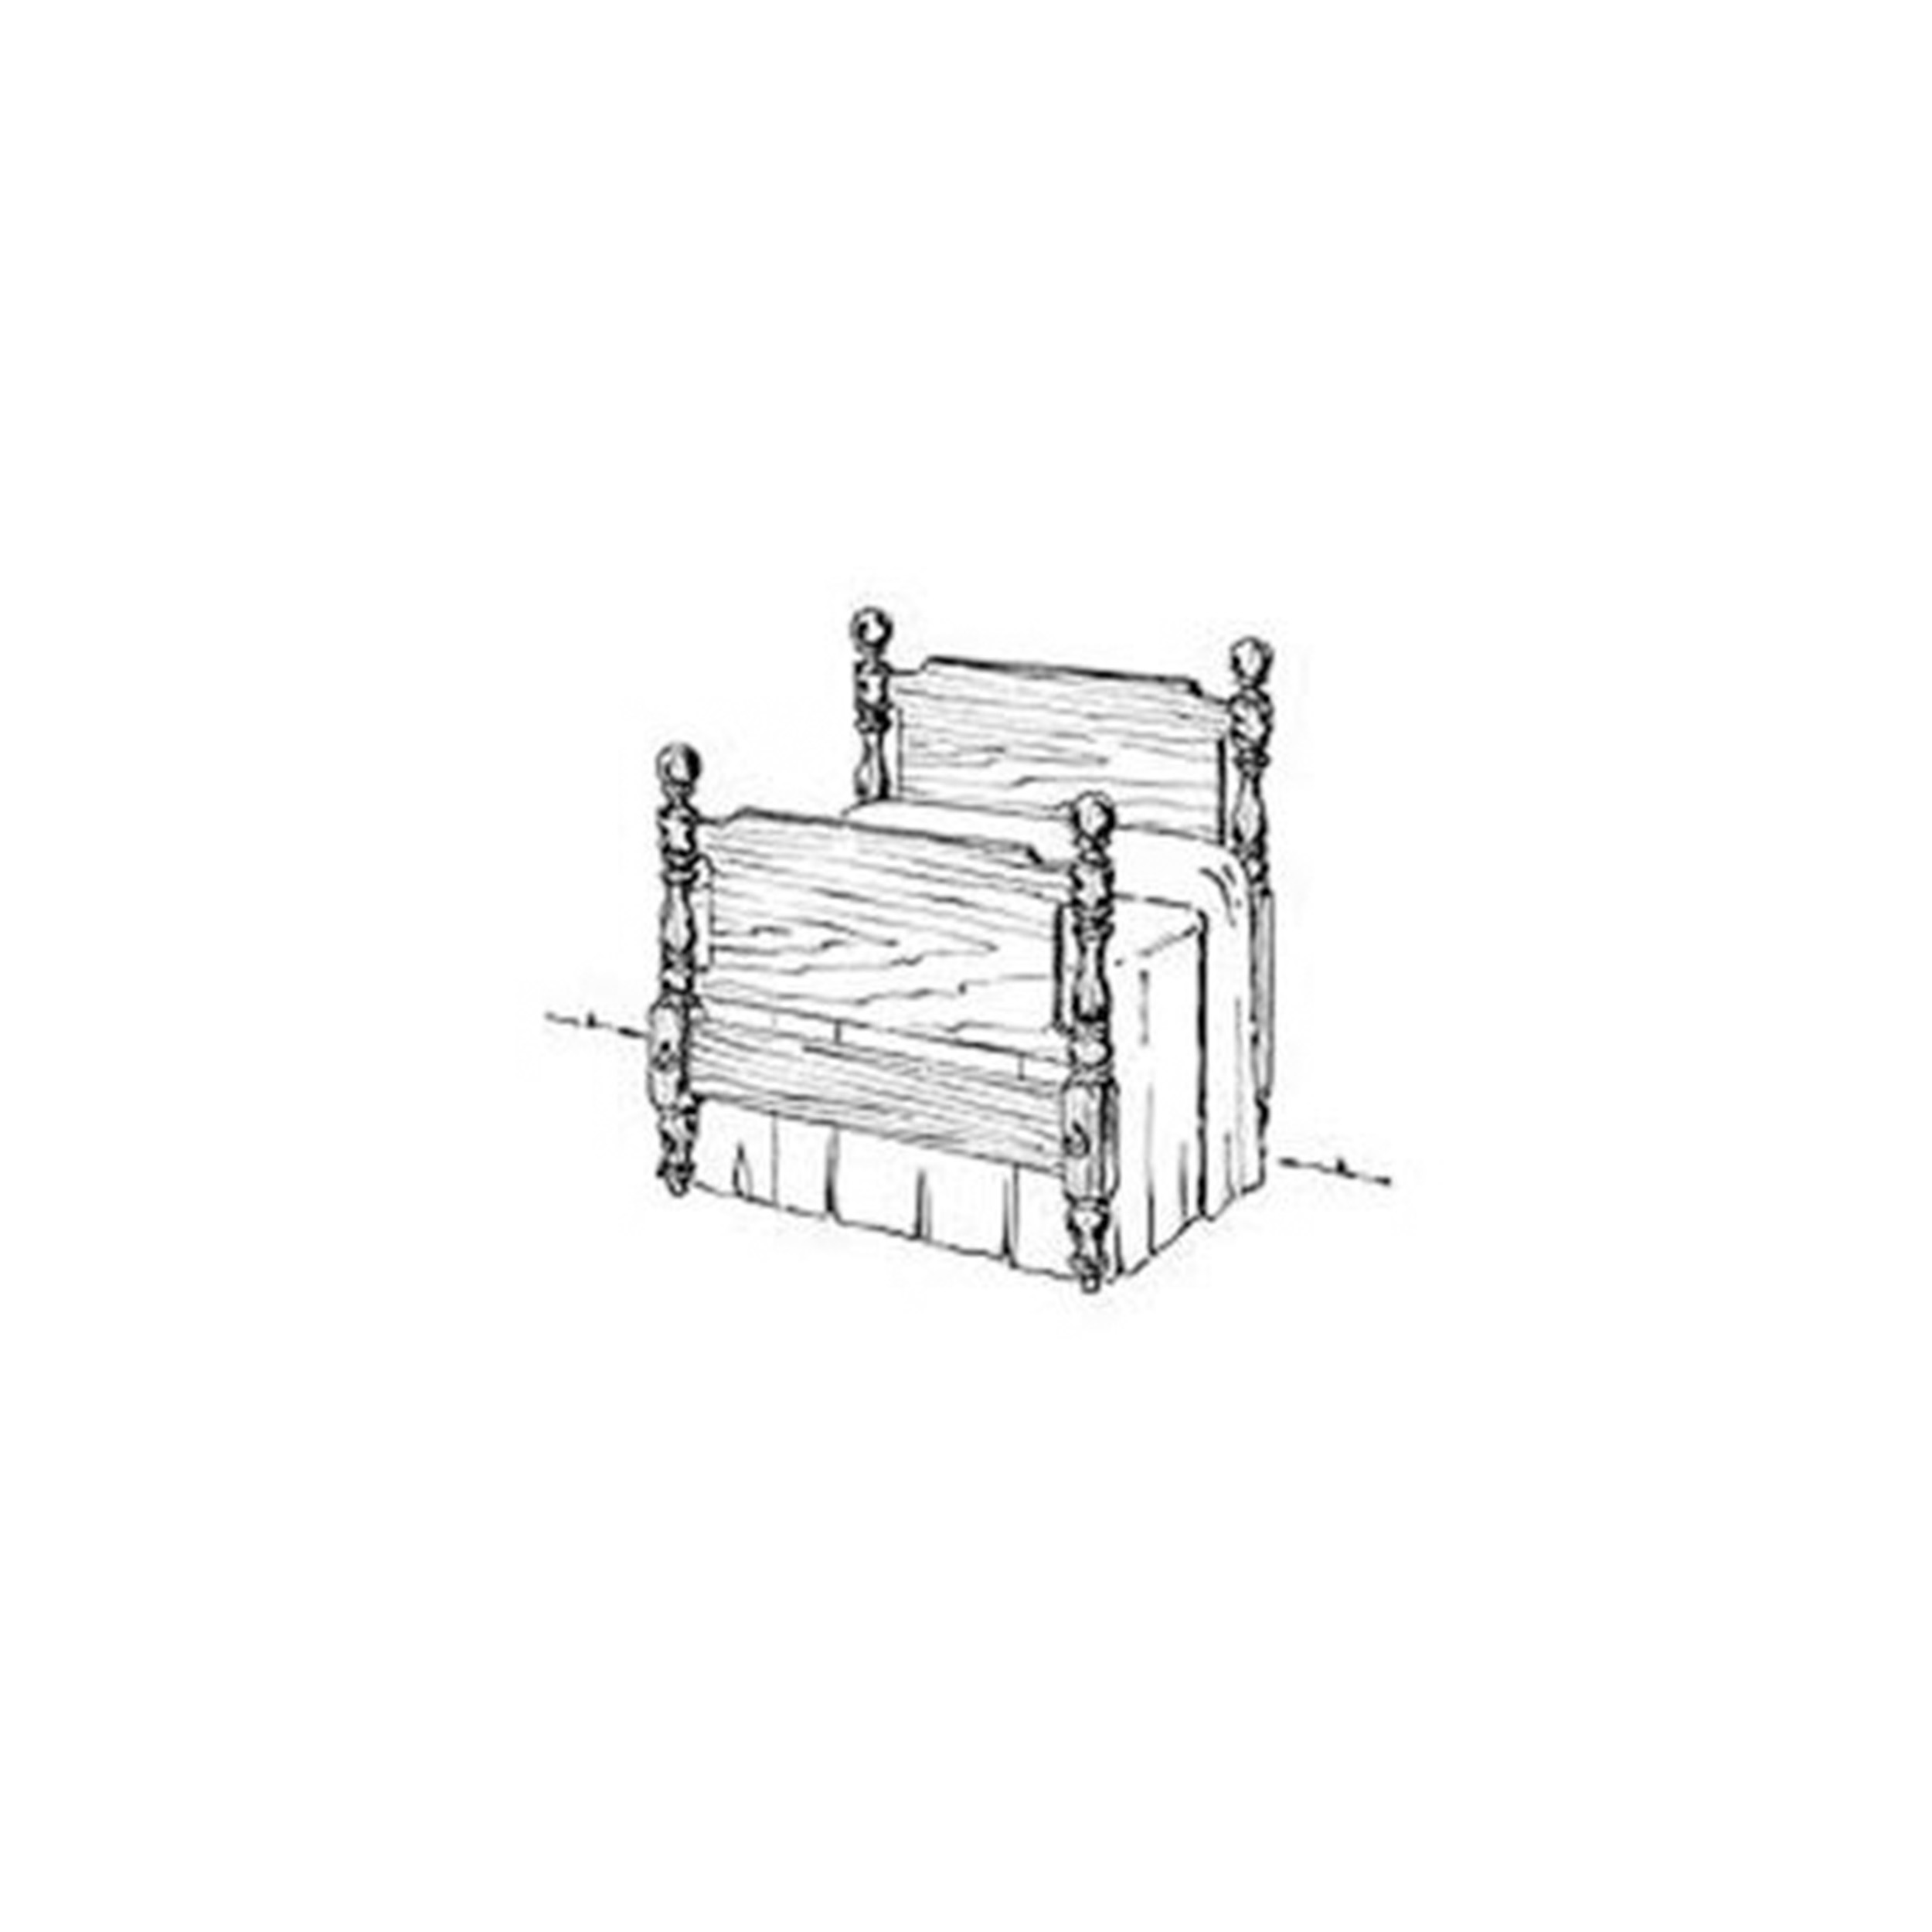 Woodworking Project Paper Plan to Build Early American Bed